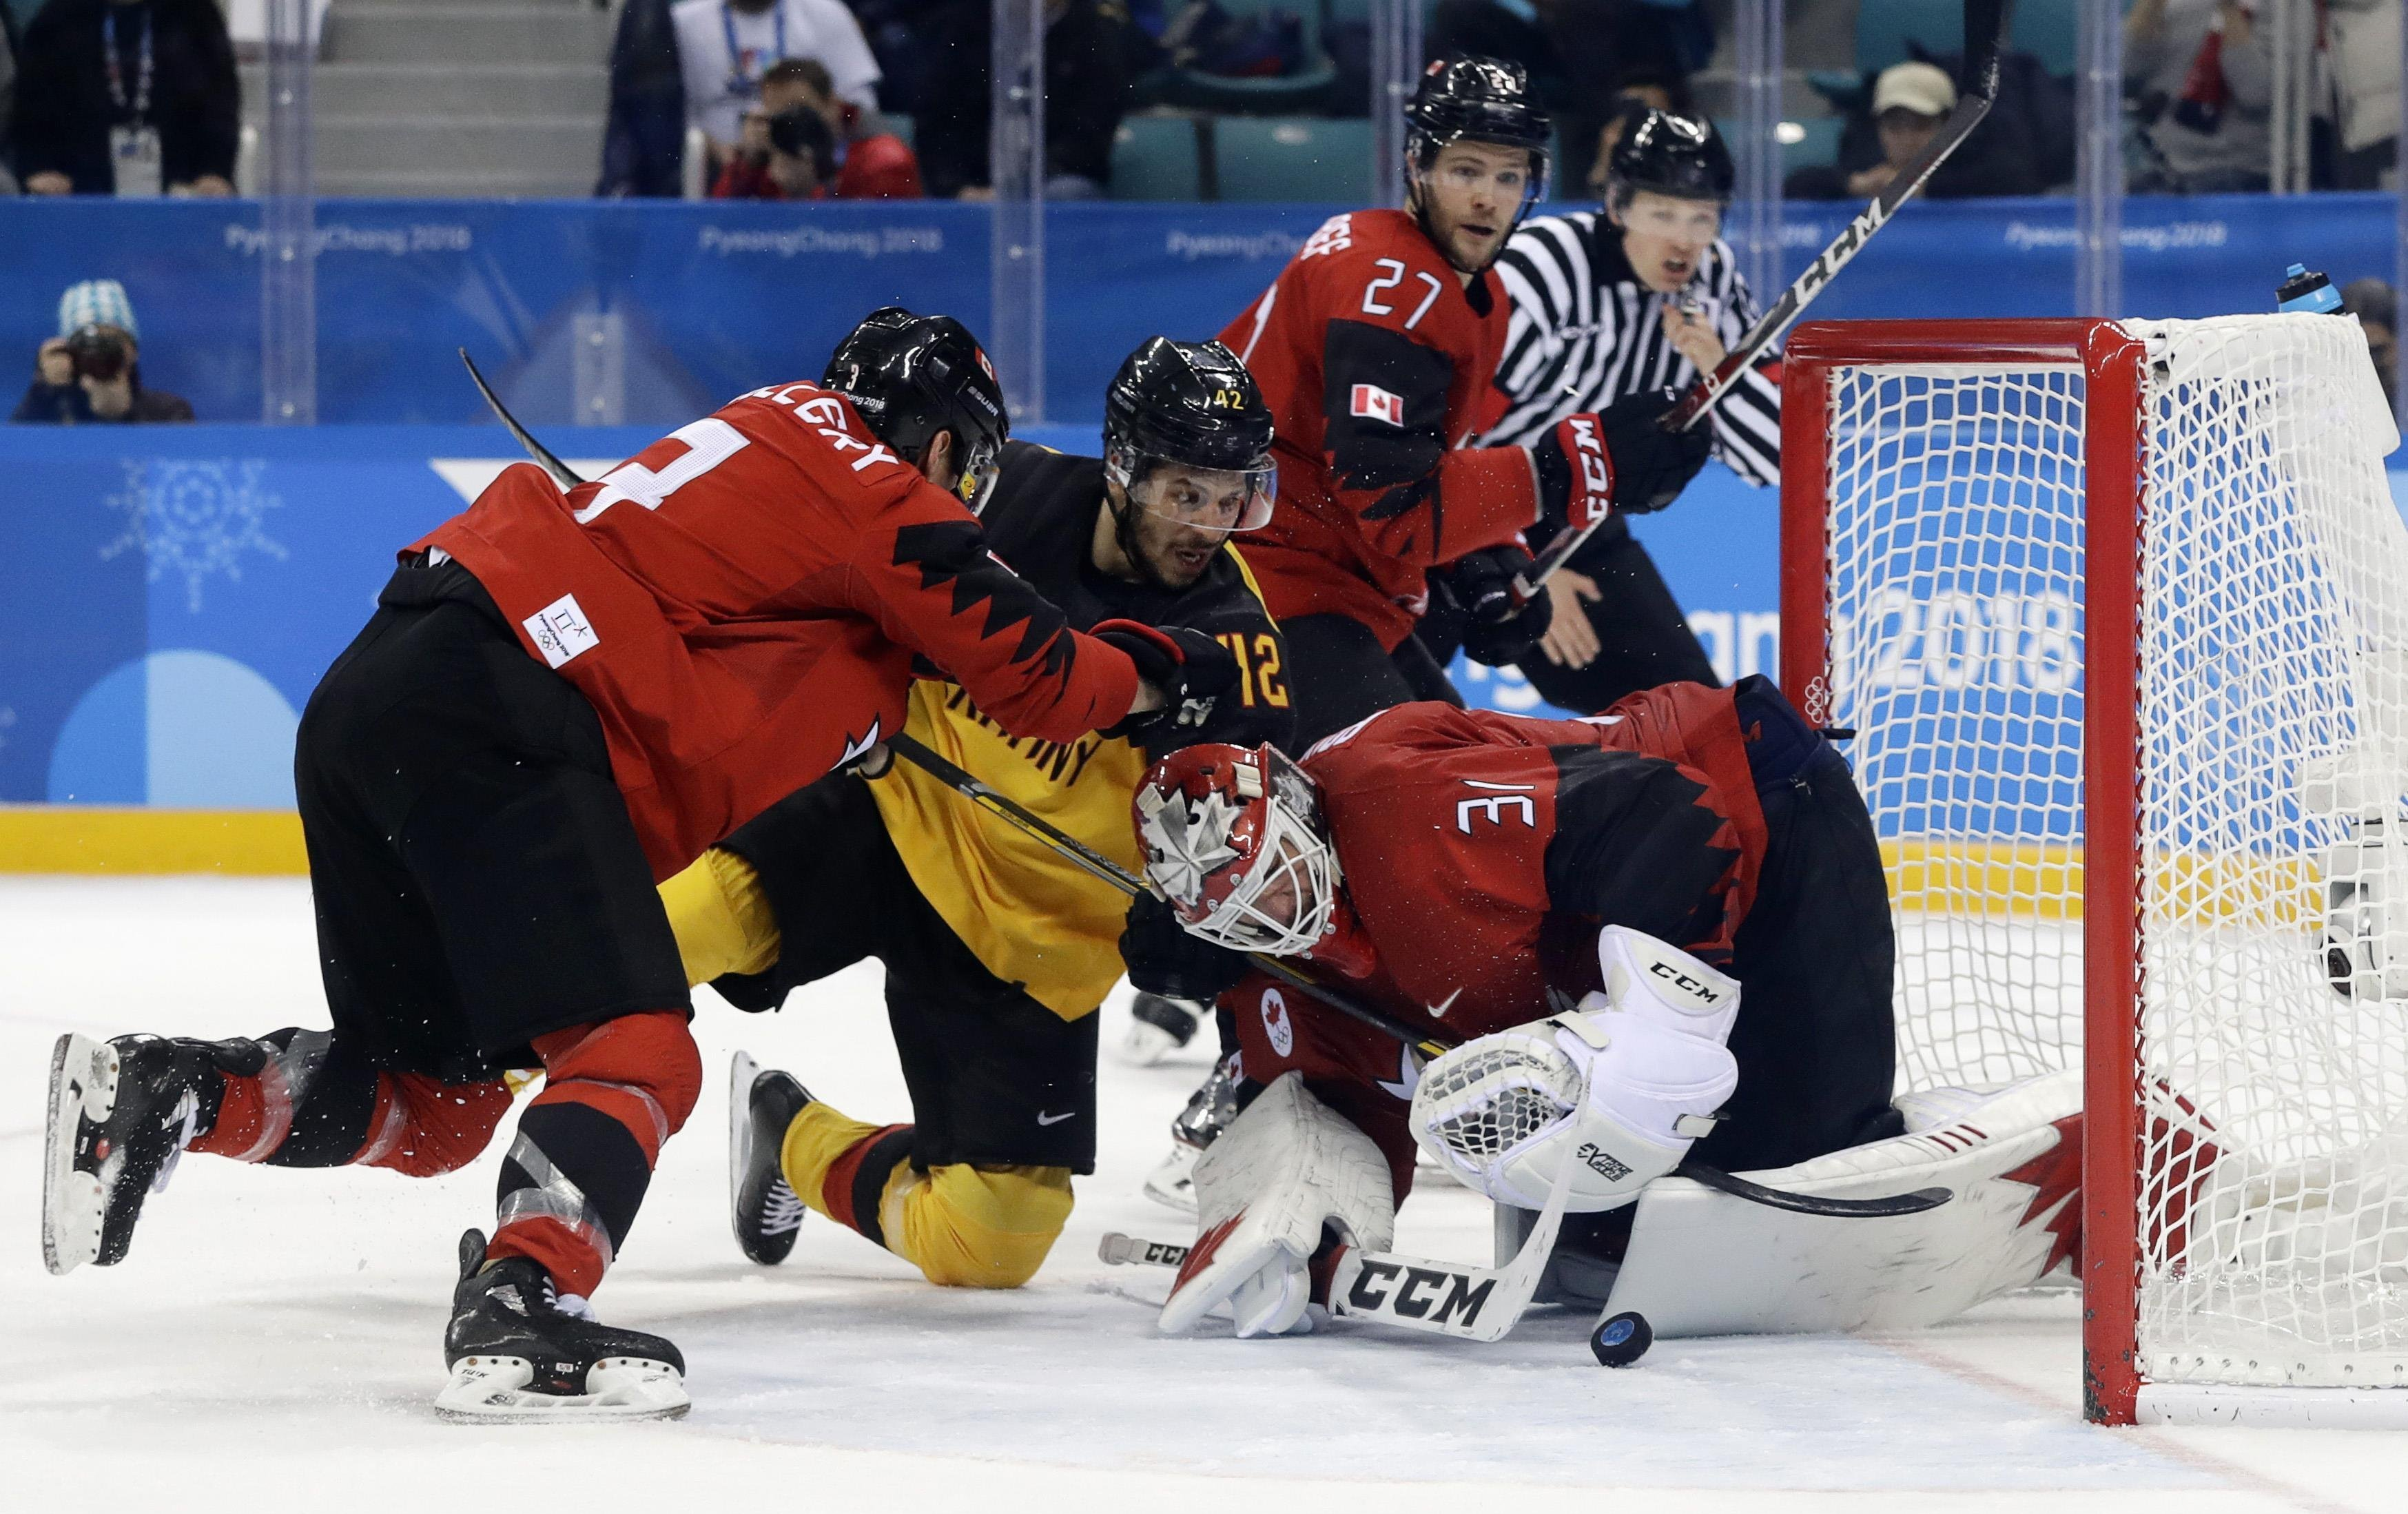 Ice Hockey - Pyeongchang 2018 Winter Olympics - Men Semifinal Match - Canada v Germany - Gangneung Hockey Centre, Gangneung, South Korea - February 23, 2018 - Yasin Ehliz of Germany fails in his attempt to score against goalie Kevin Poulin of Canada